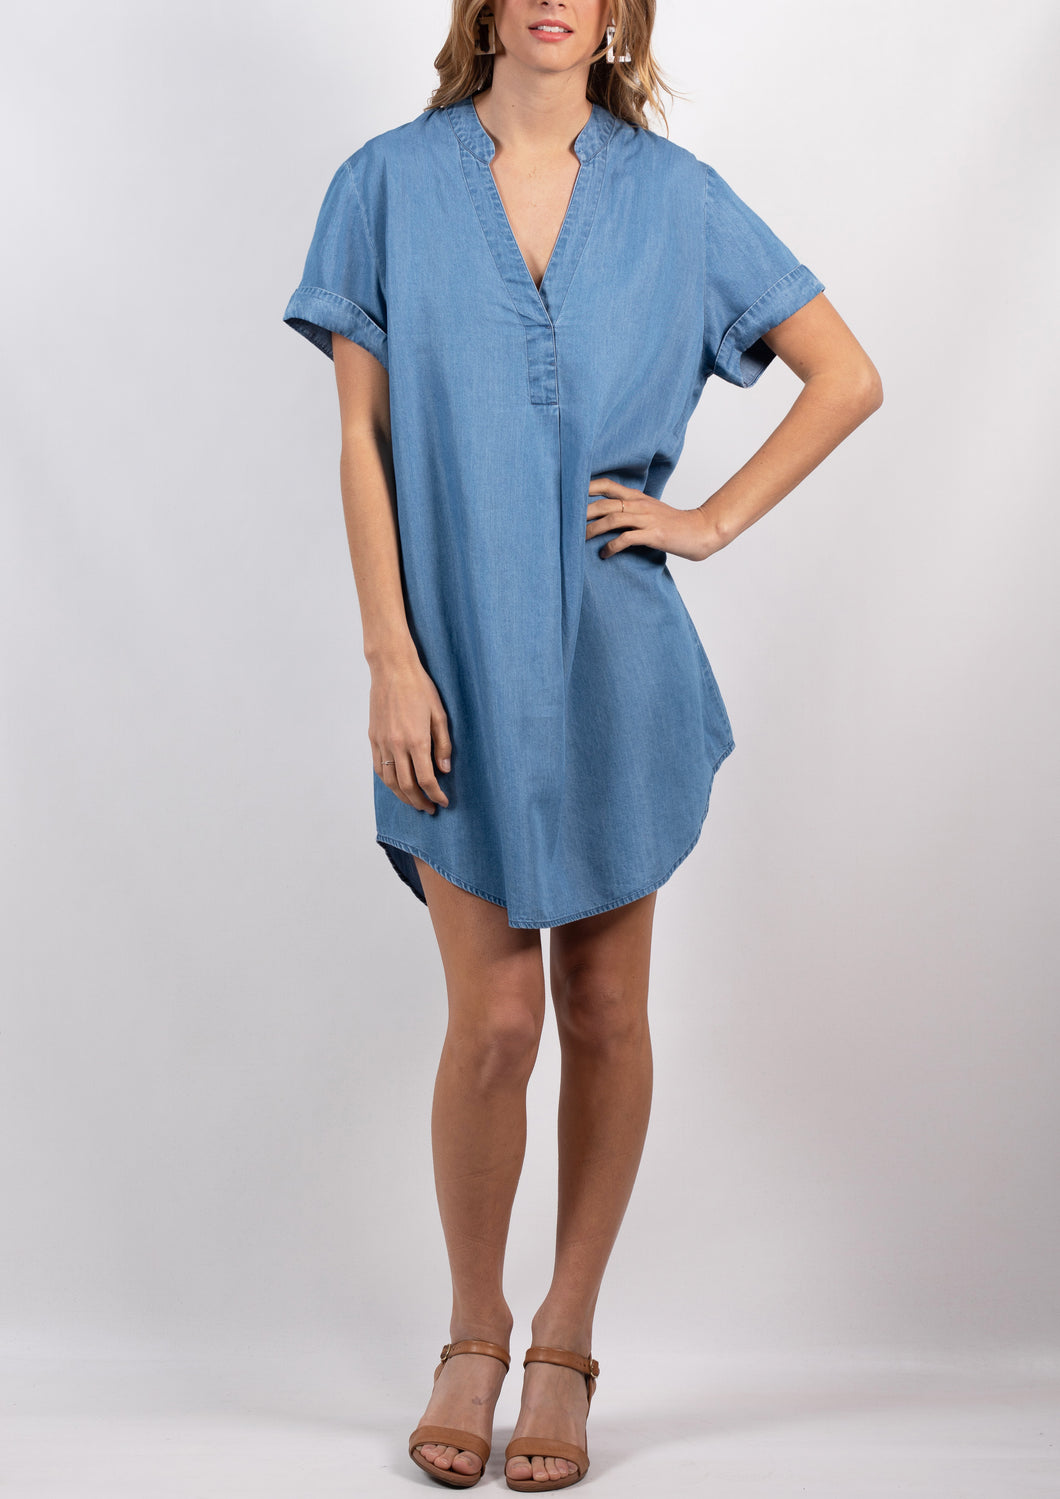 18G26SS V Neck Shirt Dress (Pack)